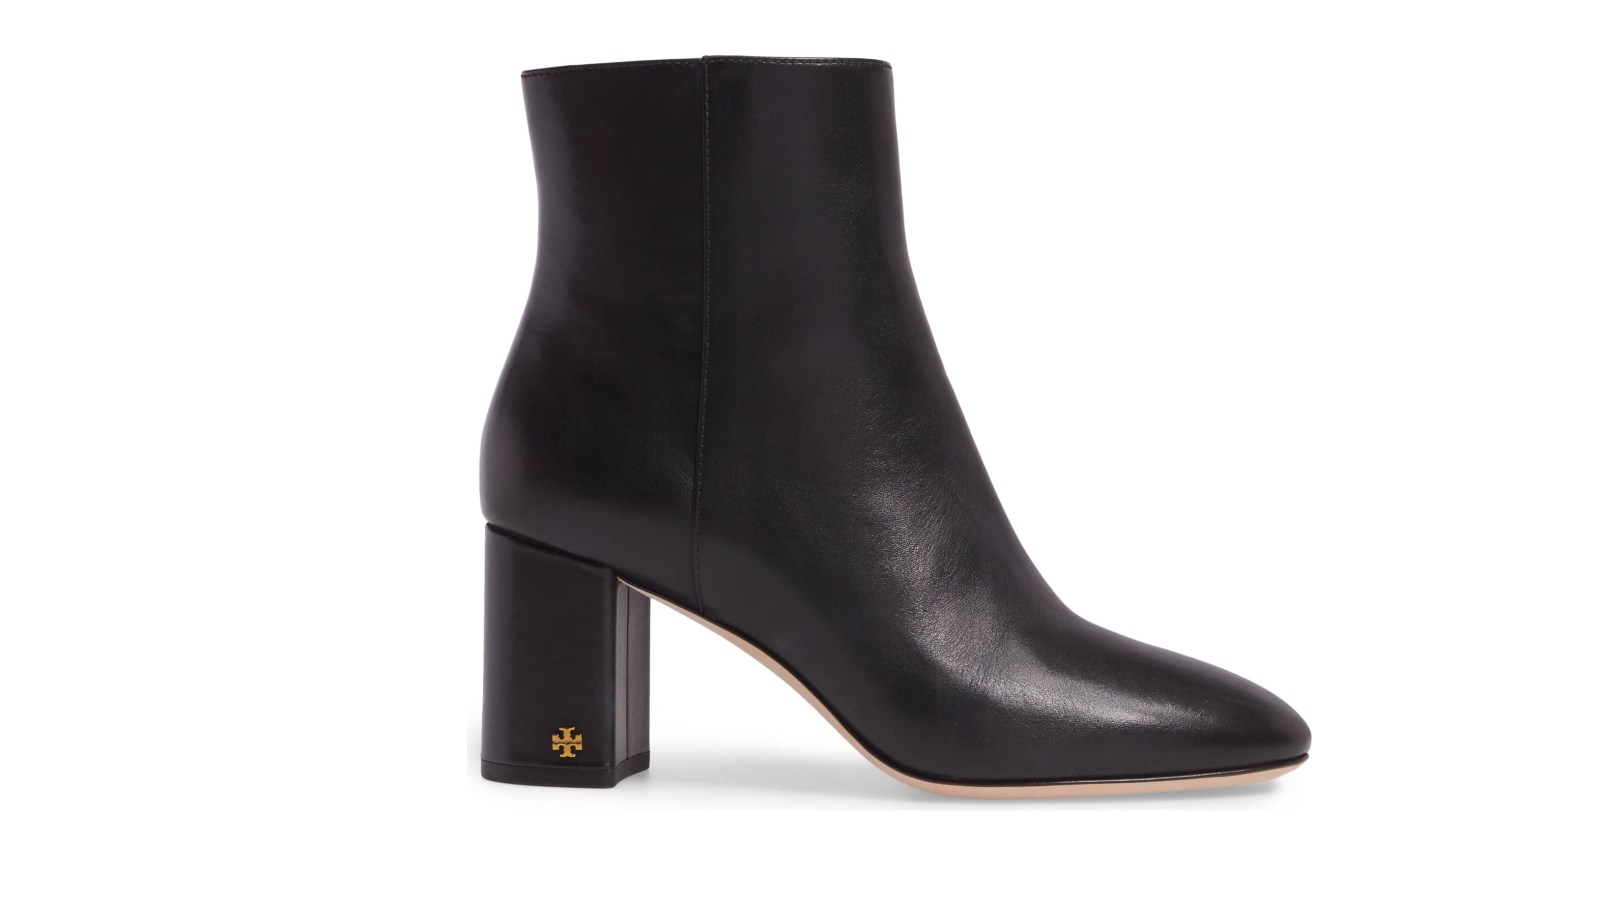 2dca68900327 Nordstrom Sale  Shop Tory Burch Brooke Booties for 50 Percent Off